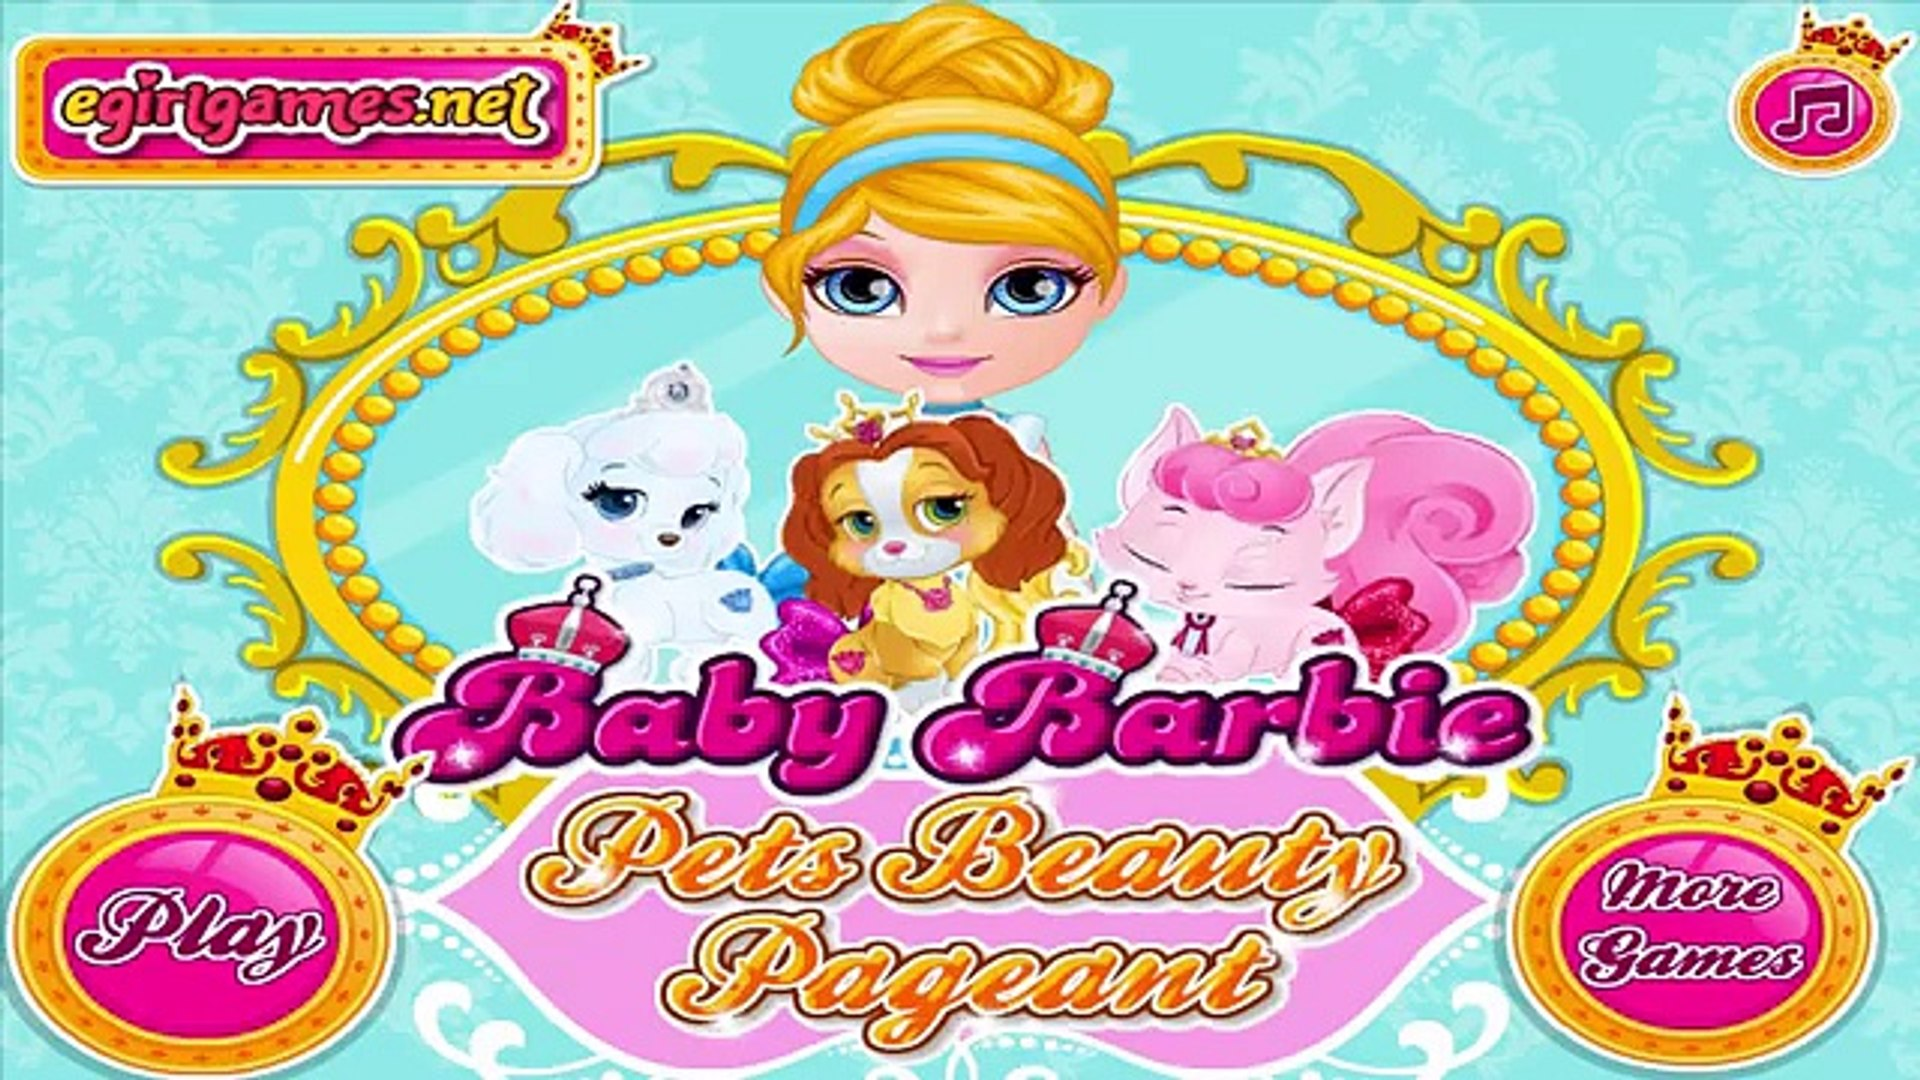 Princesses Cinderella Aurora and Belle Pets Beauty Pageant - Baby Barbie Game for Kids